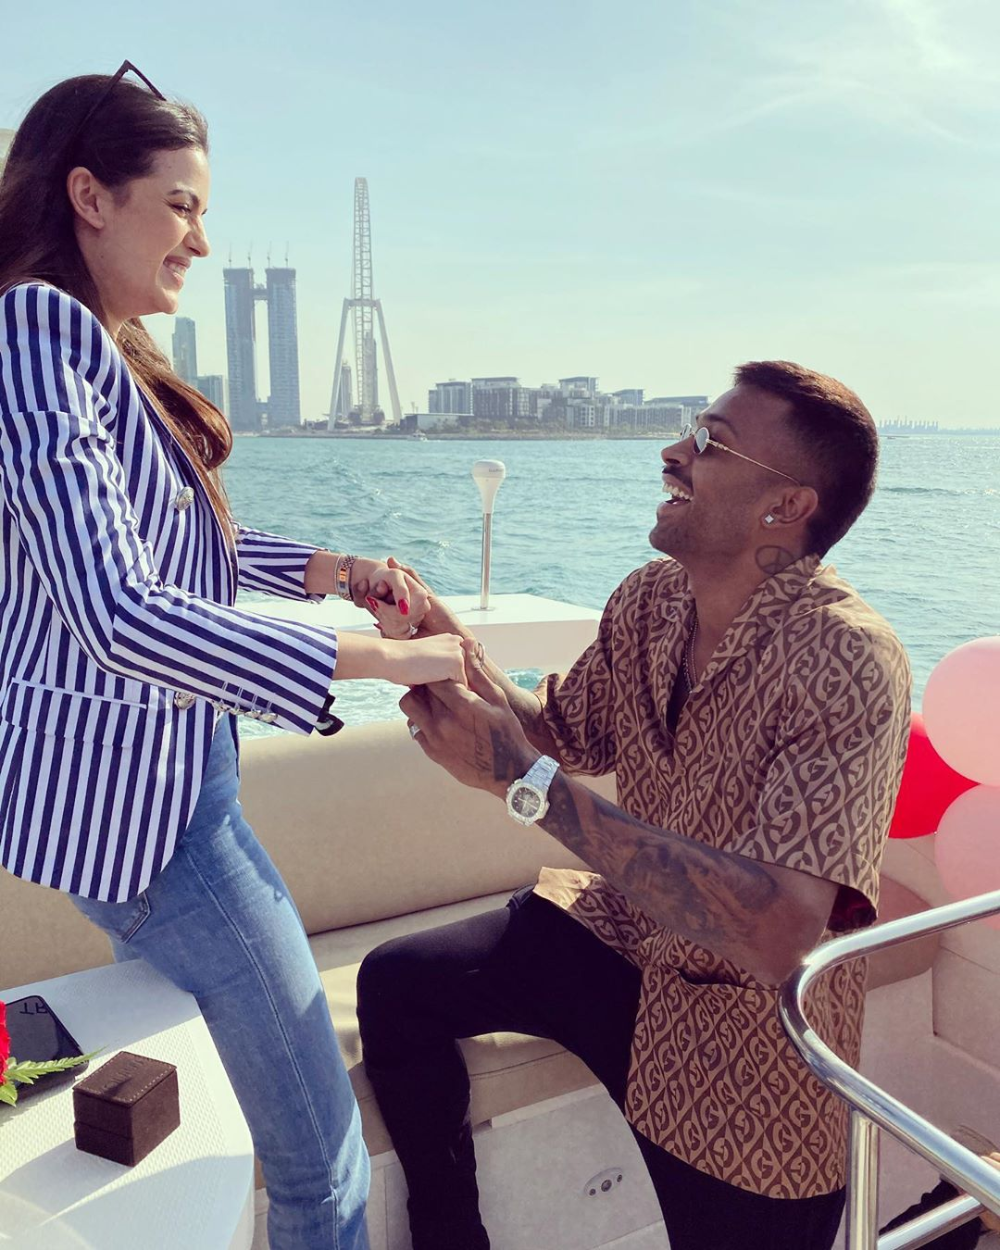 Hardik Pandya S Engagement To Natasa Stankovic On A Yacht Is Goals In 2020 Intimate Wedding Celebrity Weddings Most Beautiful Indian Actress